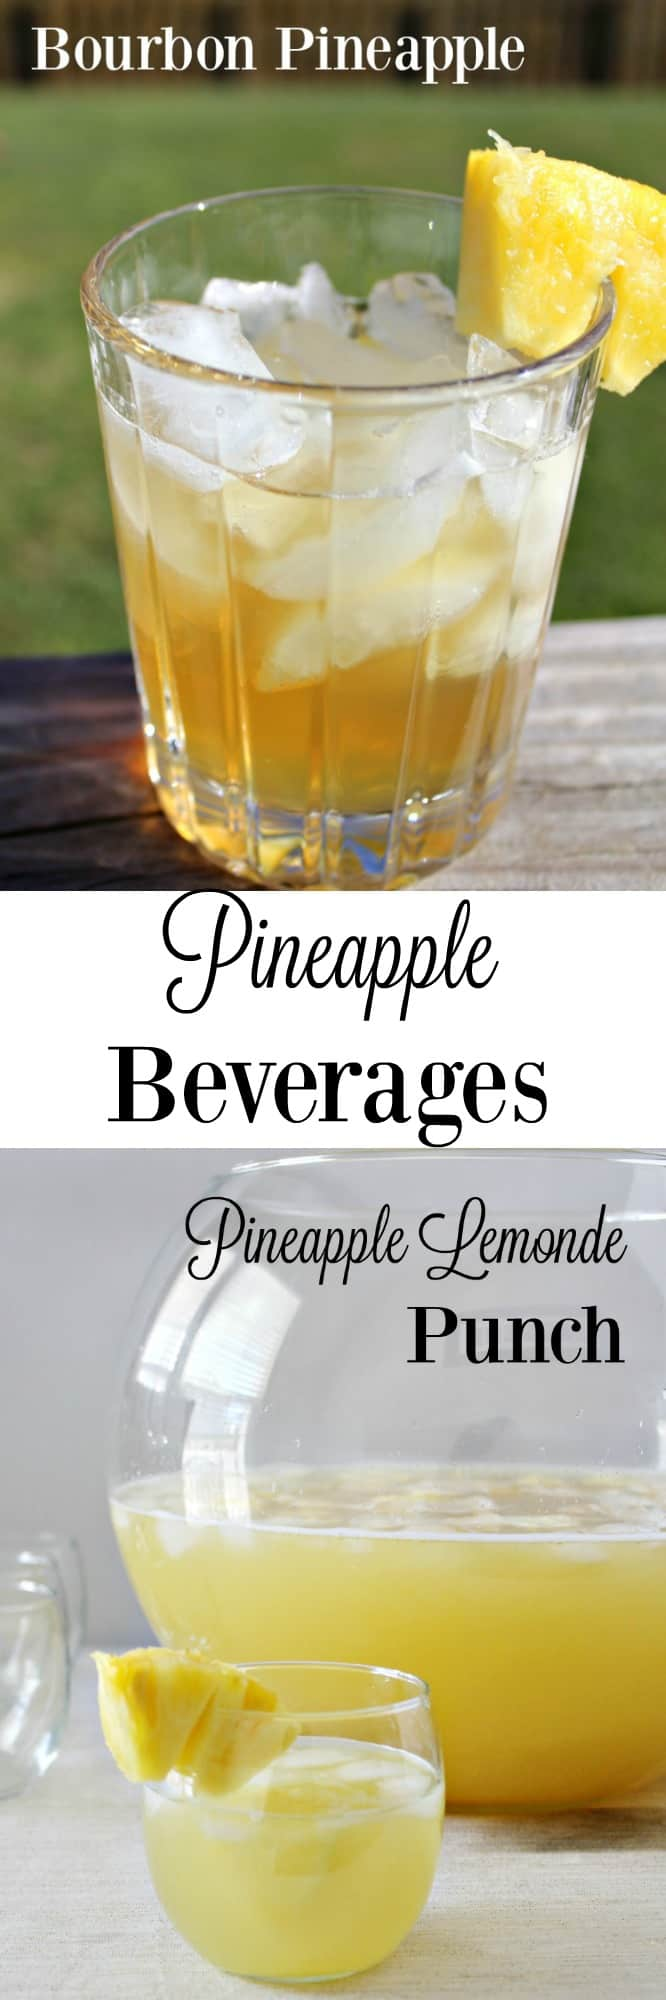 Pineapple Beverages